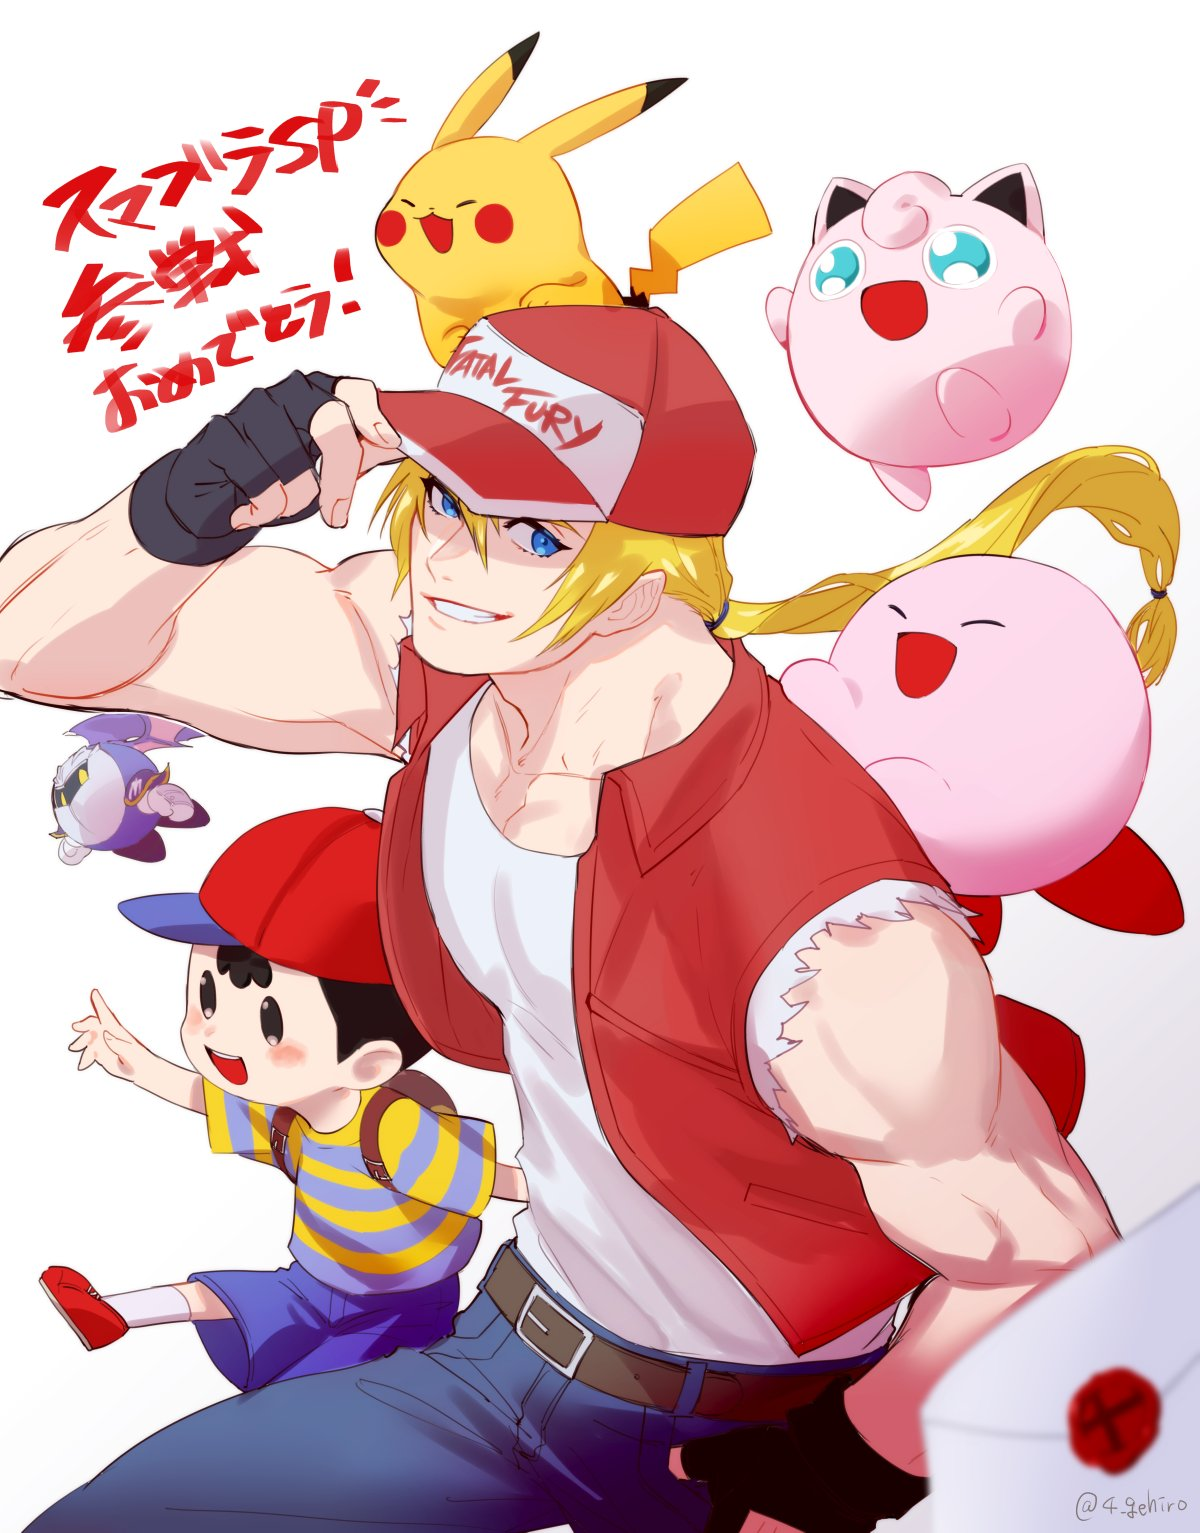 1girl 5boys adult animal ape_(company) balloon_(pokemon) baseball_cap blonde_hair blue_eyes bomber_jacket child closed_eyes creatures_(company) denim earthbound fatal_fury fingerless_gloves game_freak gen_1_pokemon gloves hal_laboratory_inc. hat highres hoshi_no_kirby human jacket jeans jigglypuff juu_satoshi kirby kirby_(series) kirby_(specie) long_hair looking_at_viewer male_focus mask meta_knight mother_(game) mother_2 mouse muscle ness nintendo olm_digital open_mouth pants pikachu pink_puff_ball pokemon pokemon_(anime) pokemon_(creature) pokemon_rgby ponytail smile snk sora_(company) super_smash_bros. super_smash_bros._ultimate super_smash_bros_64 super_smash_bros_brawl tank_top terry_bogard the_king_of_fighters white_background